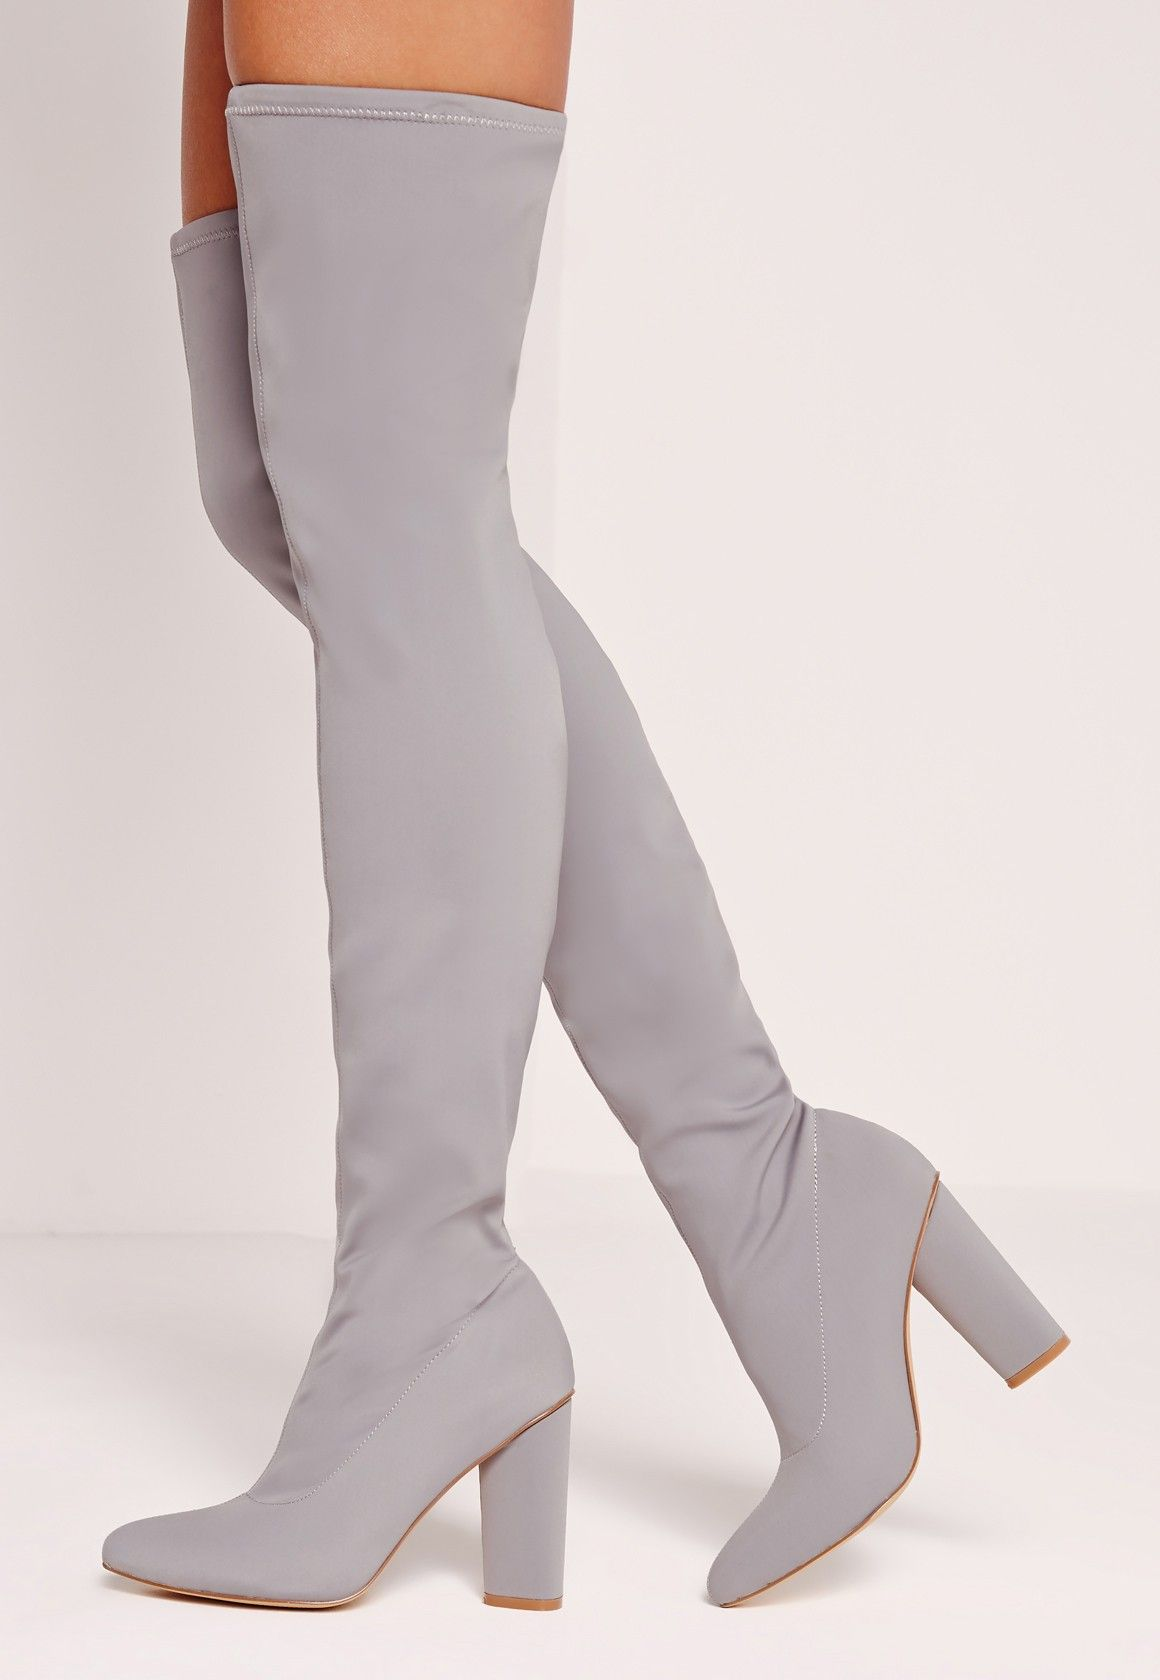 71eafc1e992 Missguided - Pointed Toe Neoprene Over The Knee Boot Grey